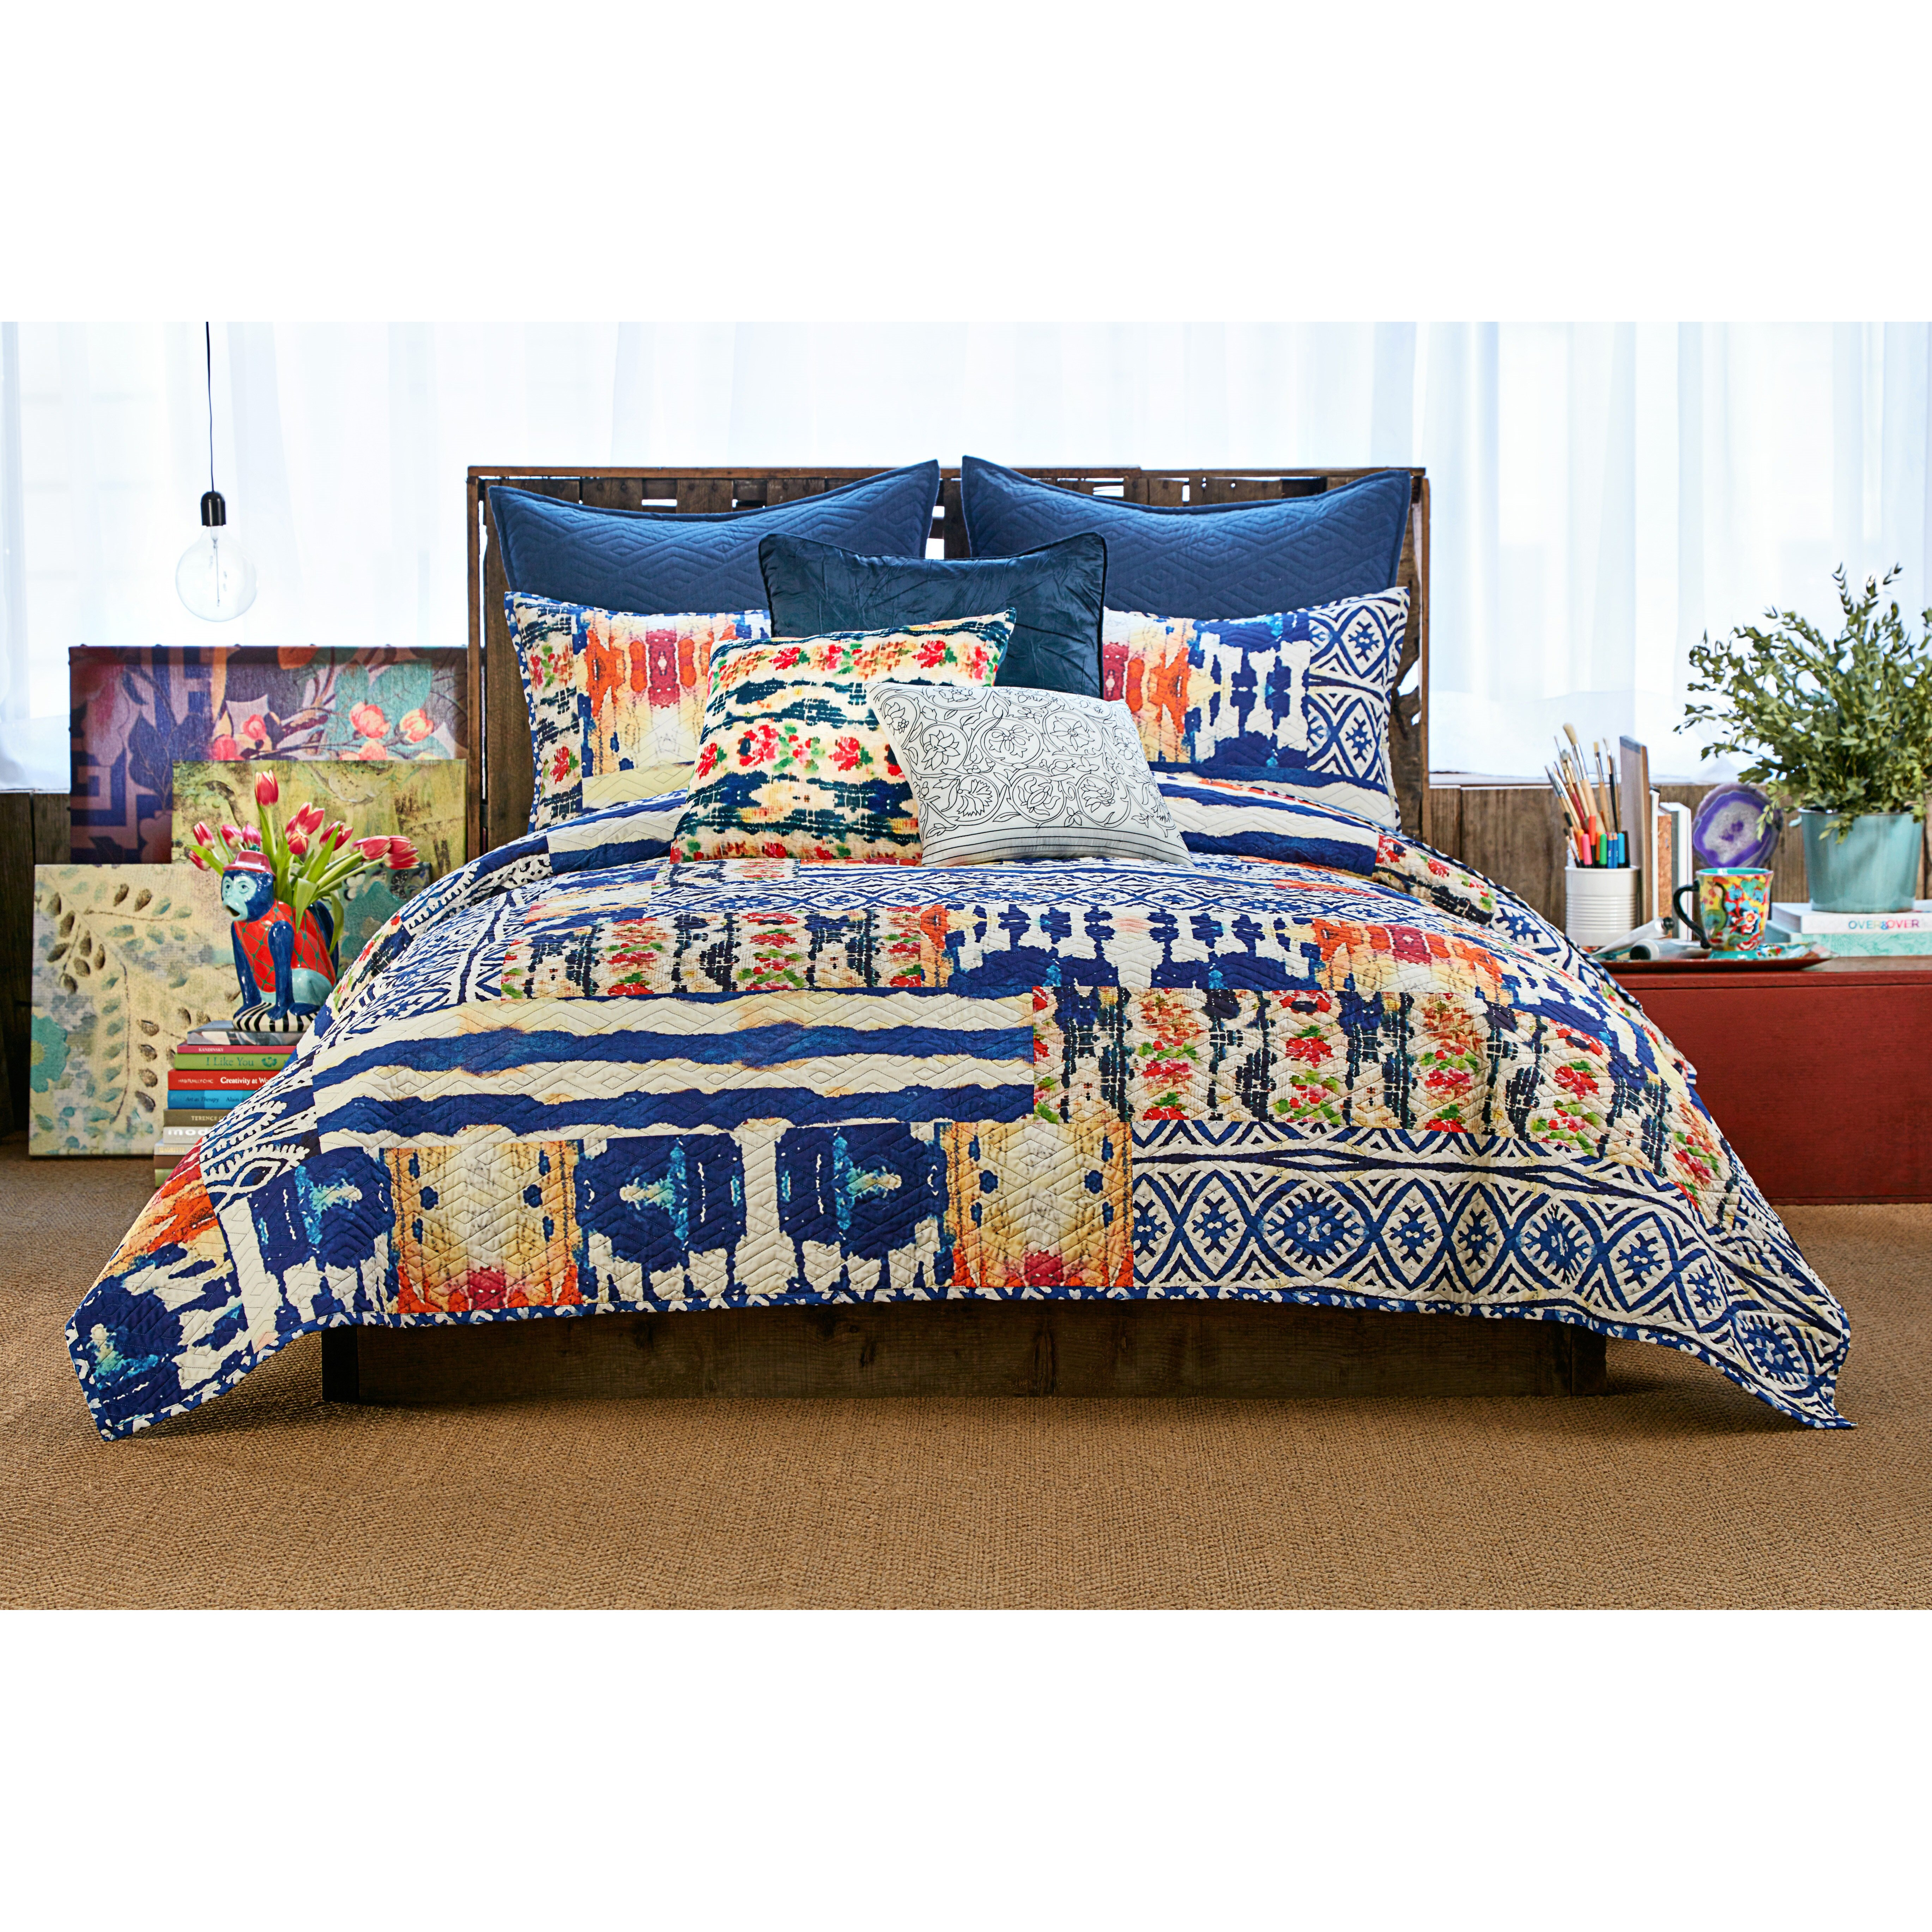 Tracy Porter Griffin Quilt Amp Reviews Wayfair